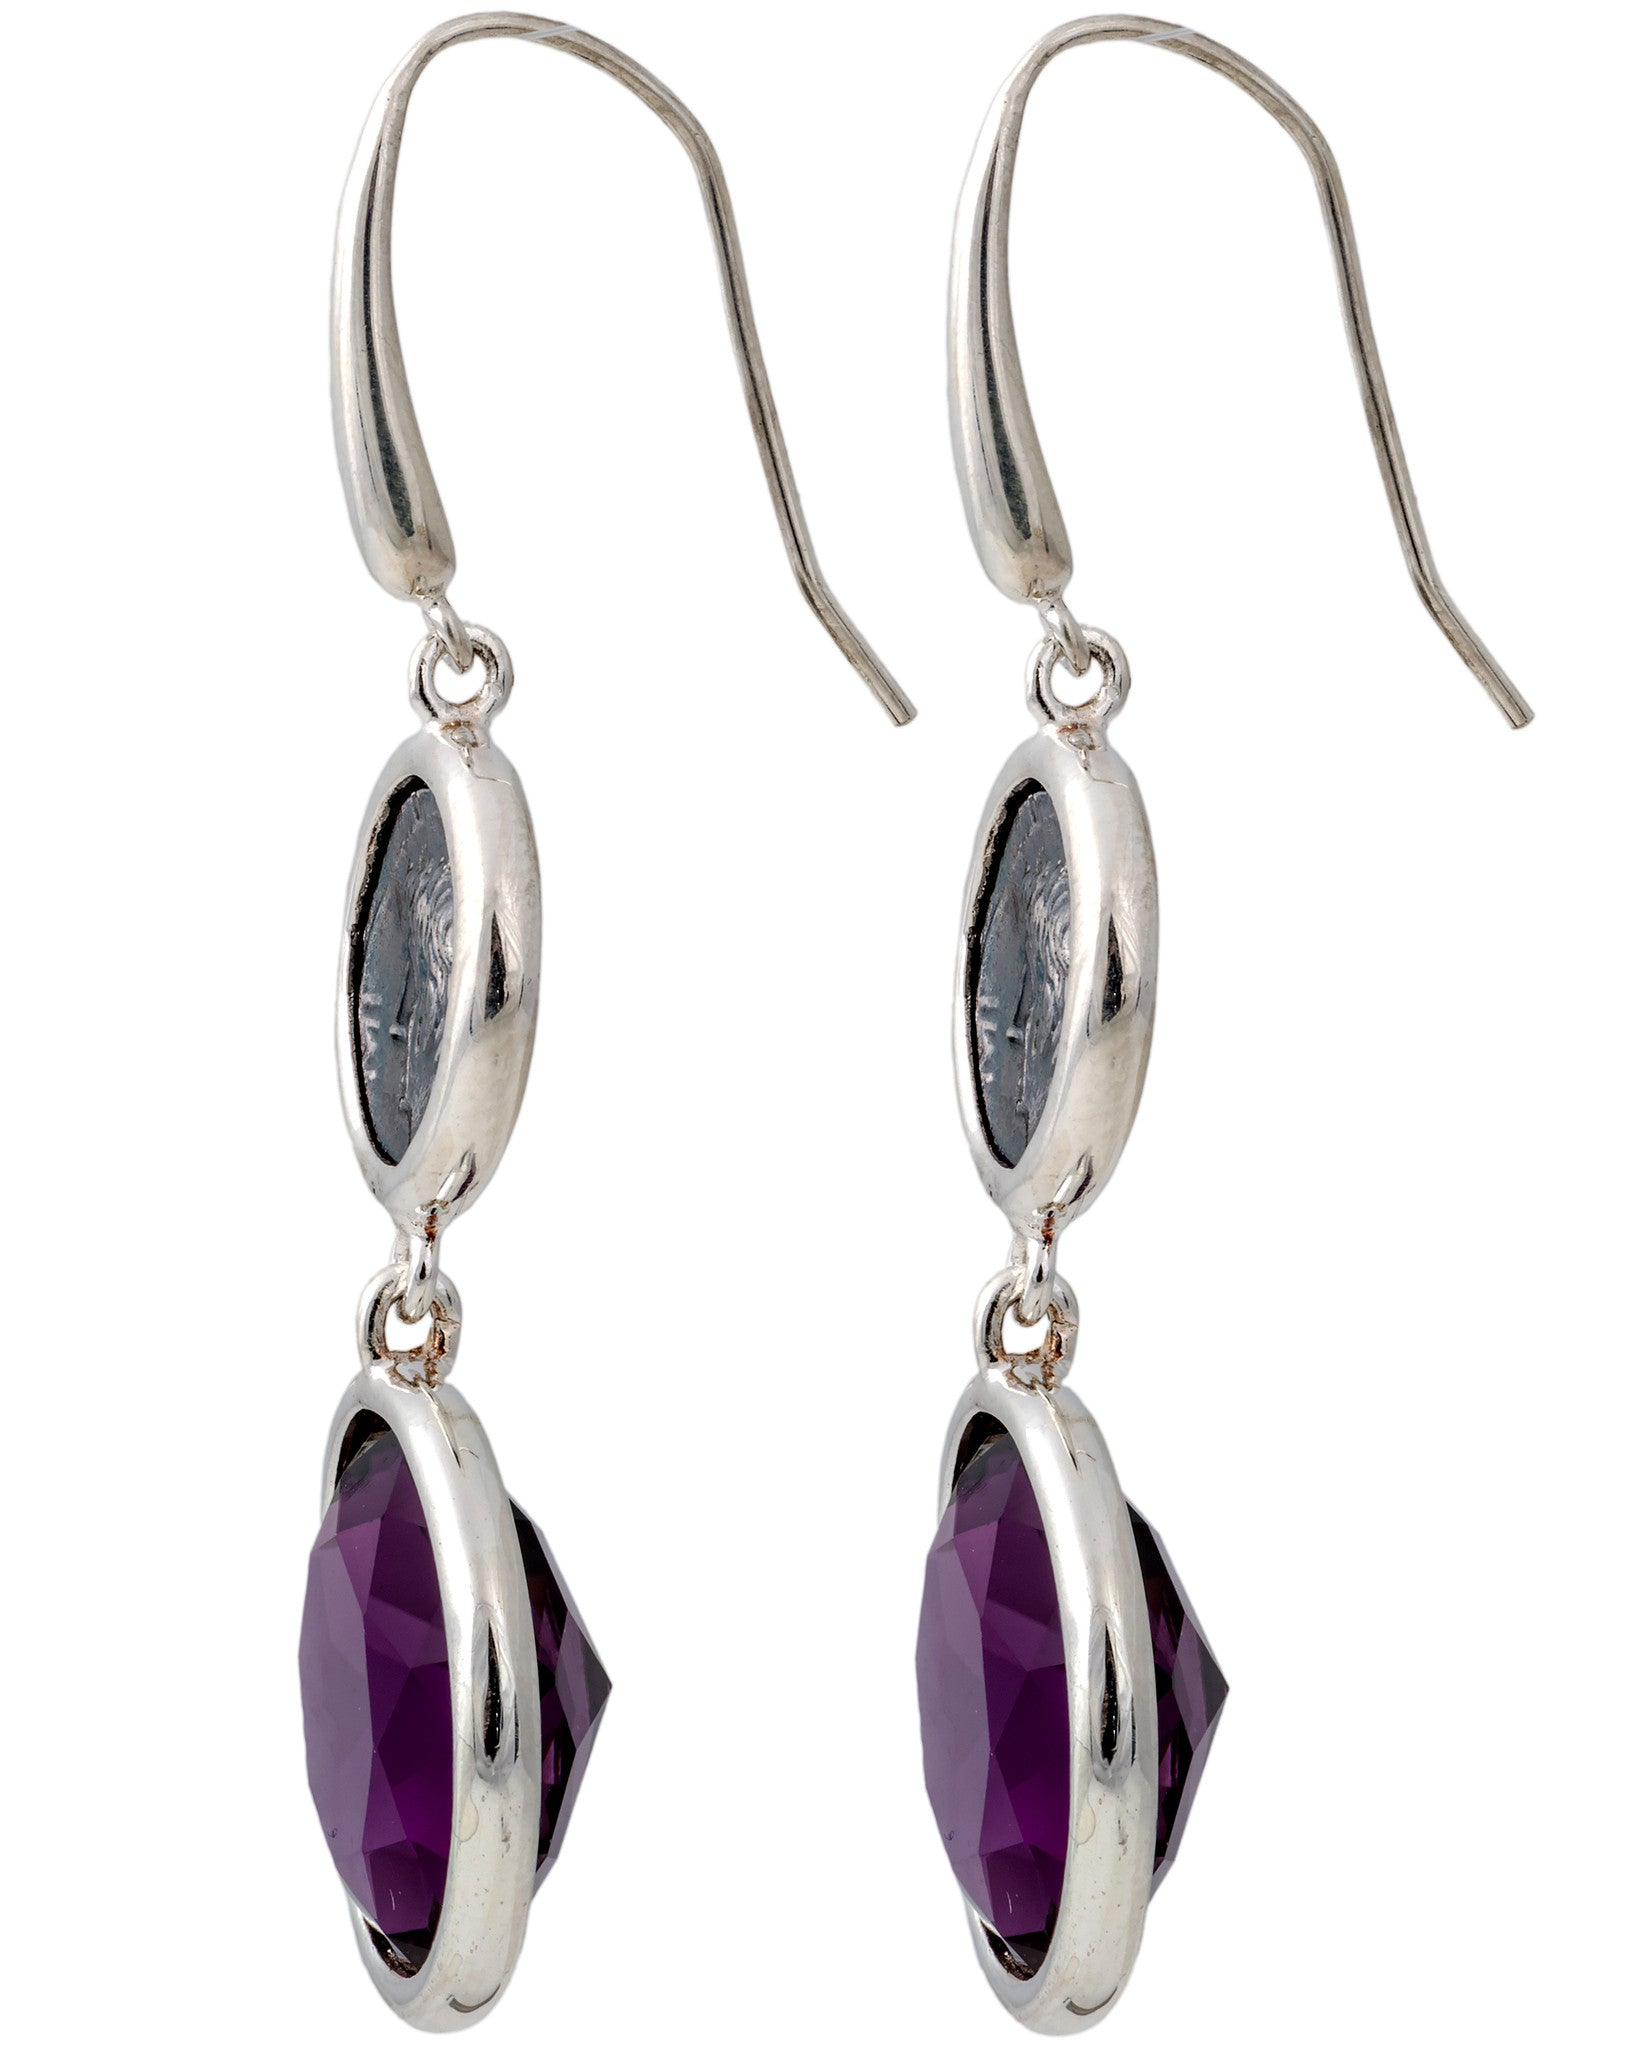 Legacy Vivace Sterling Silver Earrings w/ Small Antique Ottaviano Coins and Amethyst (27.90 ct. tw.)